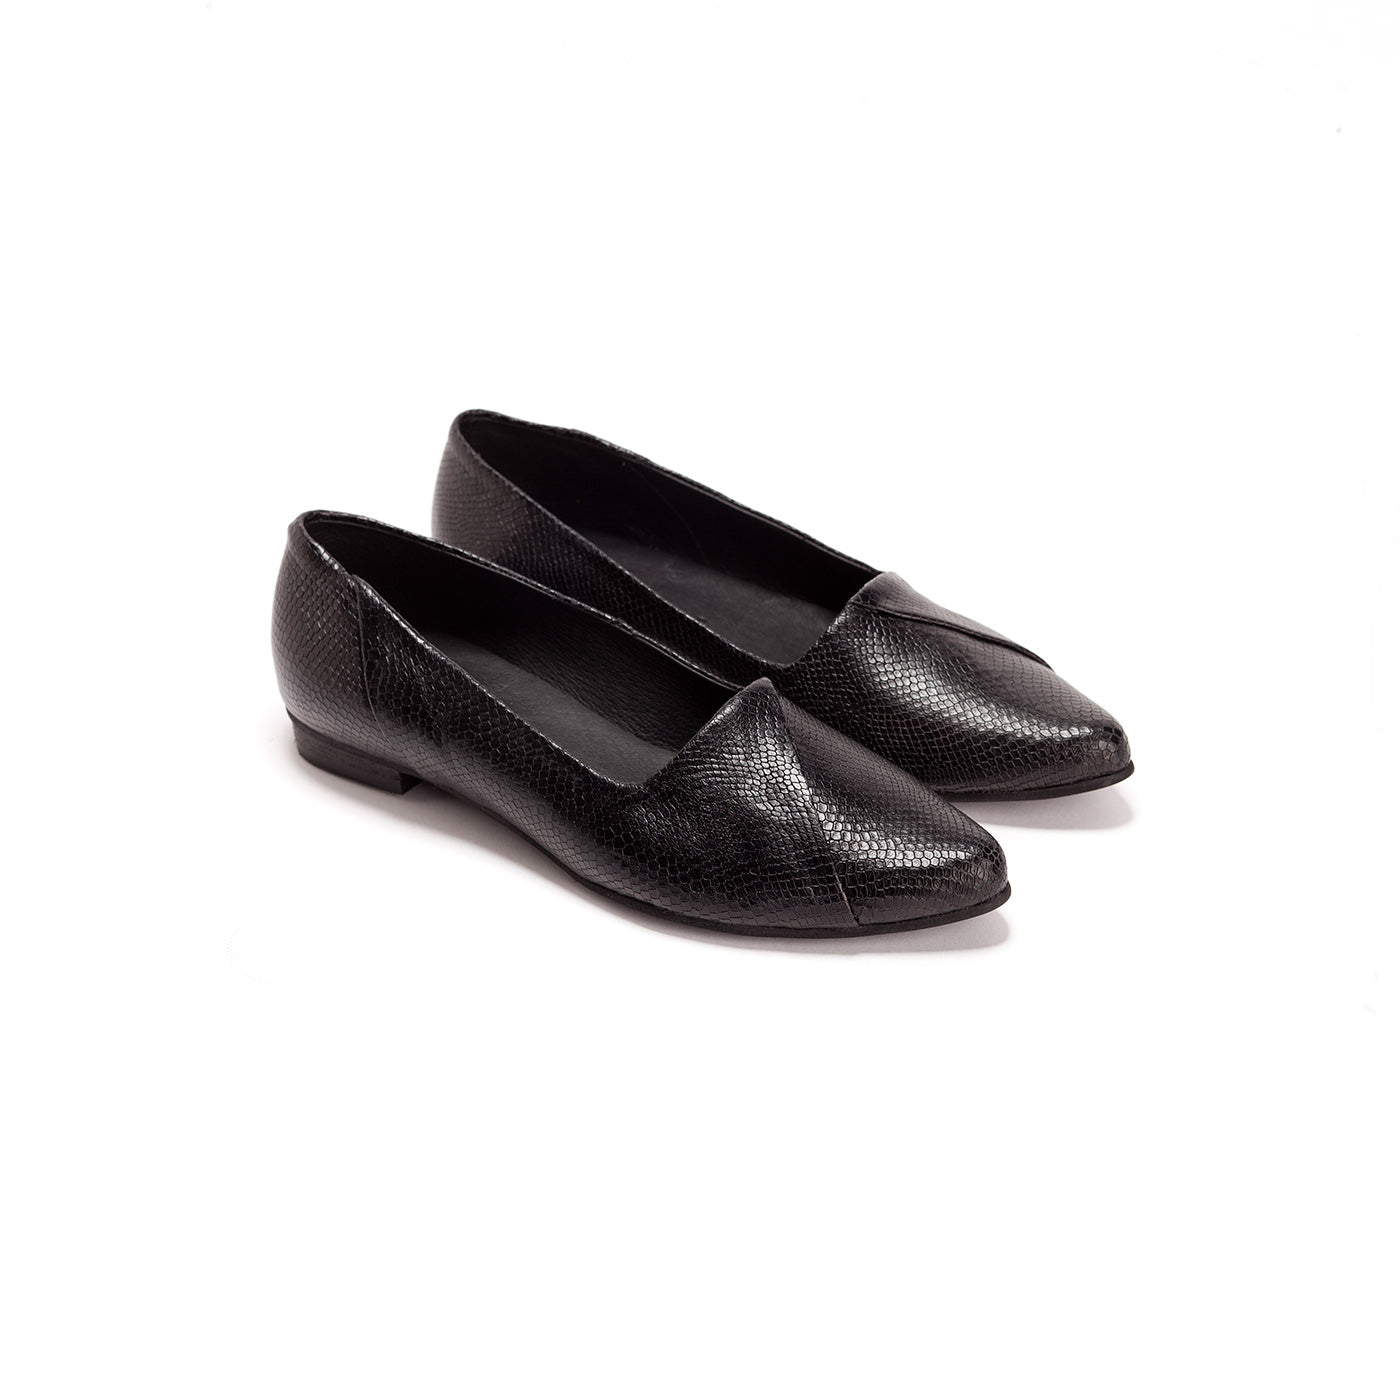 Holly - Black Leather Flats